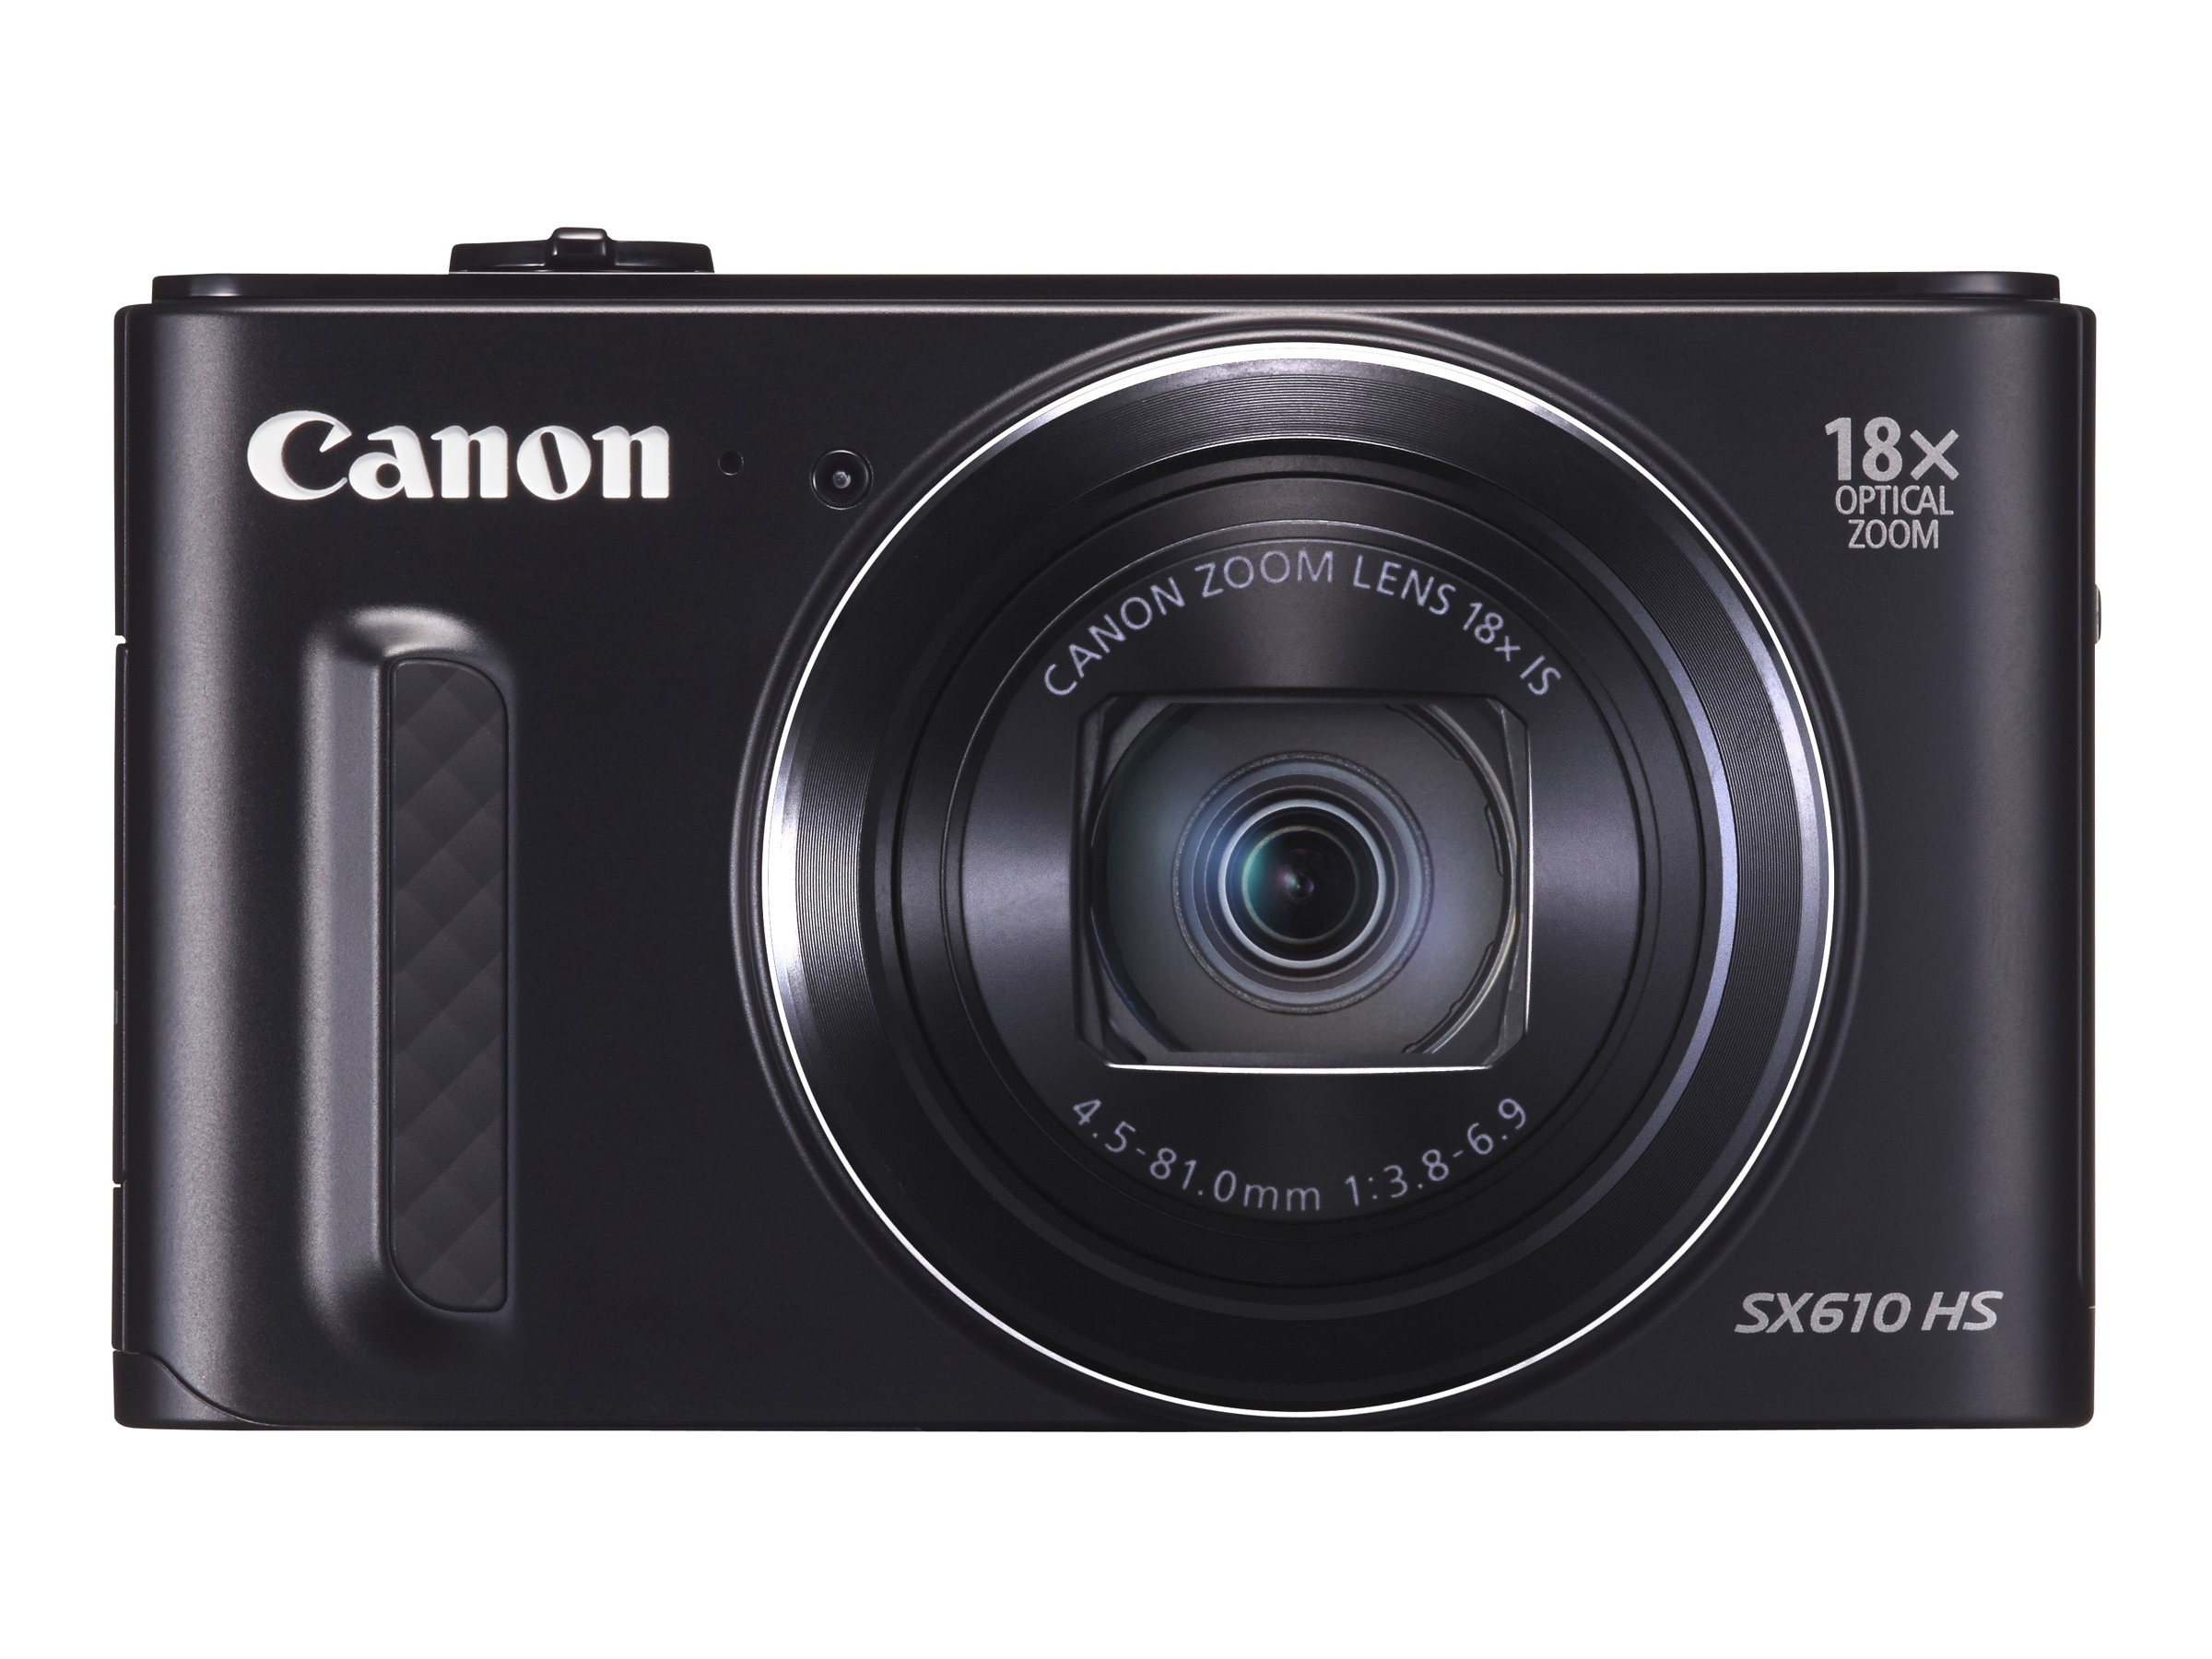 Canon Powershot SX610 HS Camera, 20.2MP, 18x Zoom, Black, 0111C001